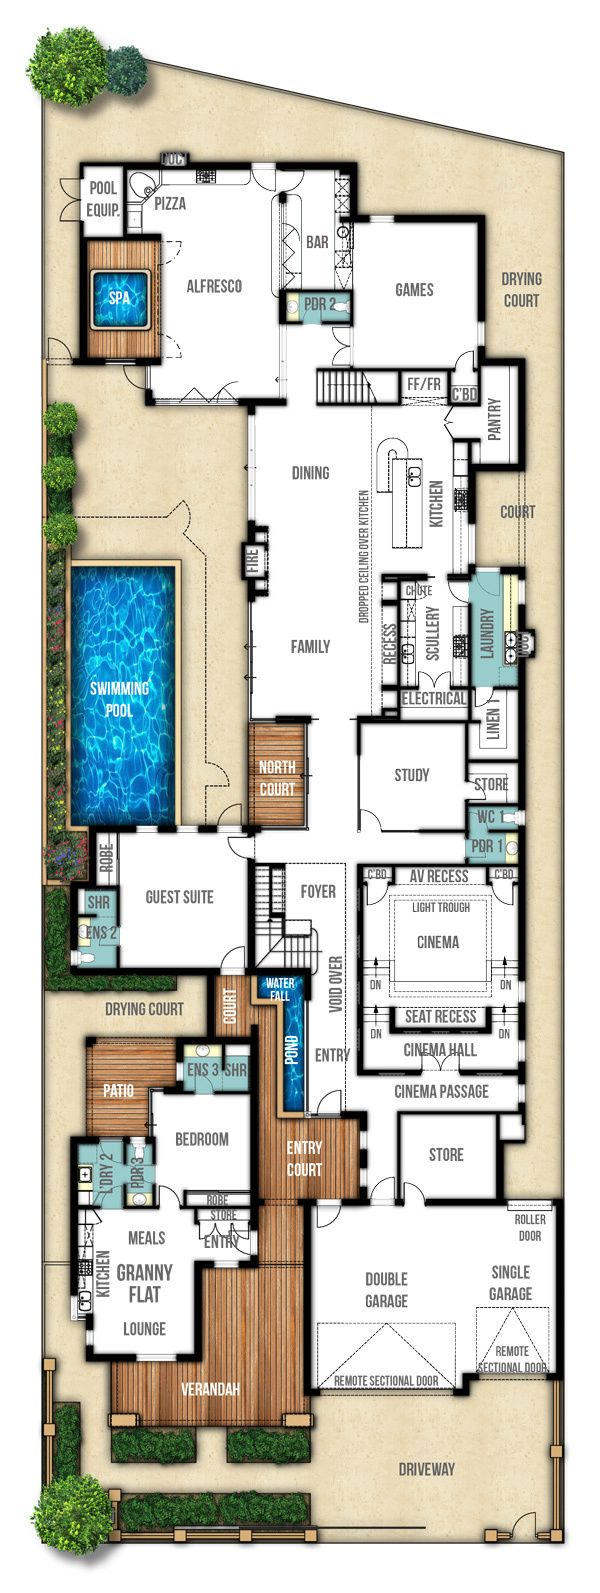 The Heritage Another Fabulous Home Design By Boyd Design Perth Dream House Plans Floor Plans House Design